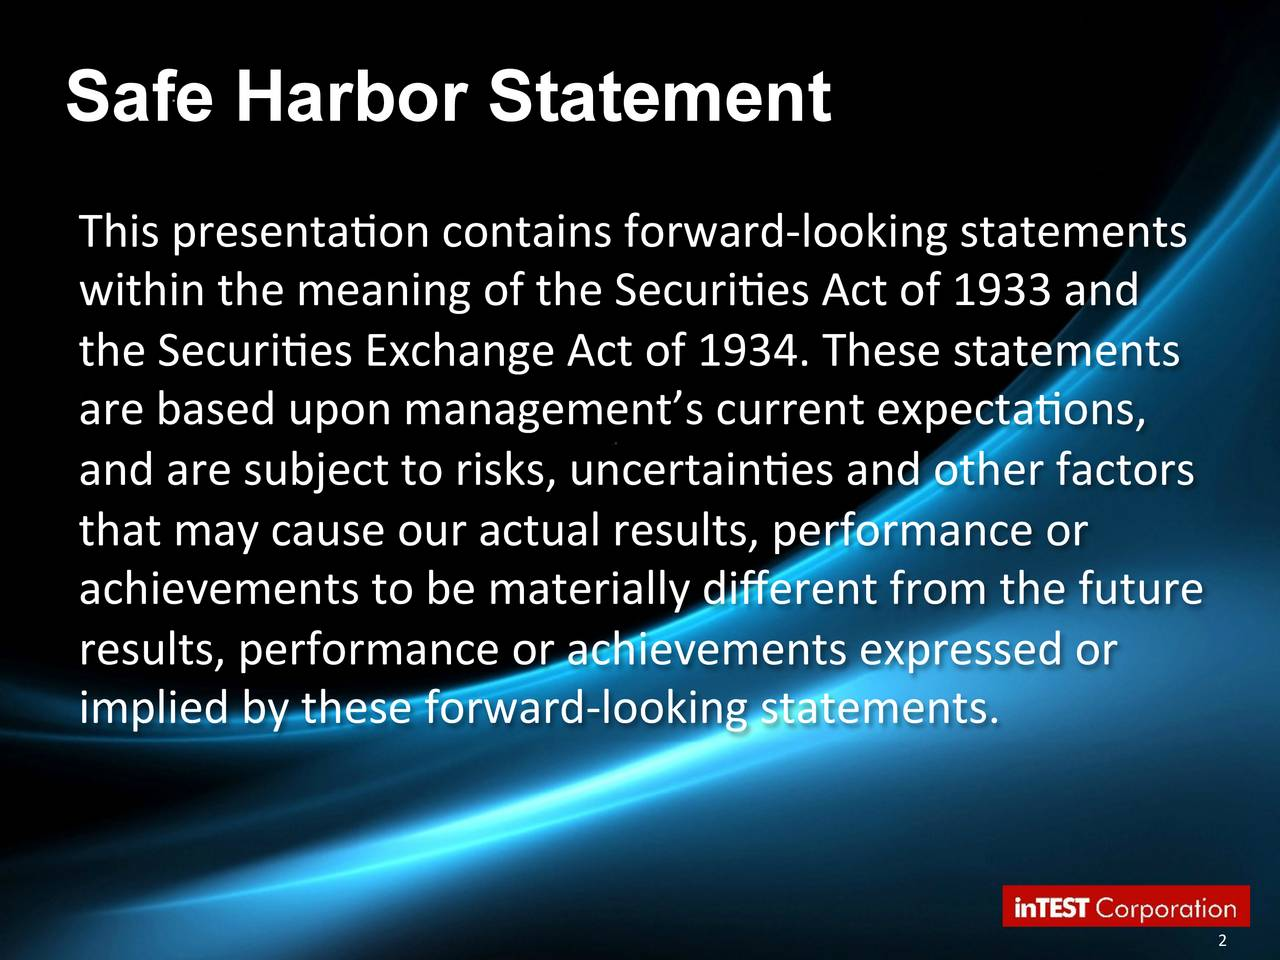 This presentaon contains forward-looking statements within the meaning of the Securies Act of 1933 and the Securies Exchange Act of 1934. These statements are based upon managements current expectaons, and are subject to risks, uncertaines and other factors that may cause our actual results, performance or achievements to be materially dierent from the future results, performance or achievements expressed or implied by these forward-looking statements.